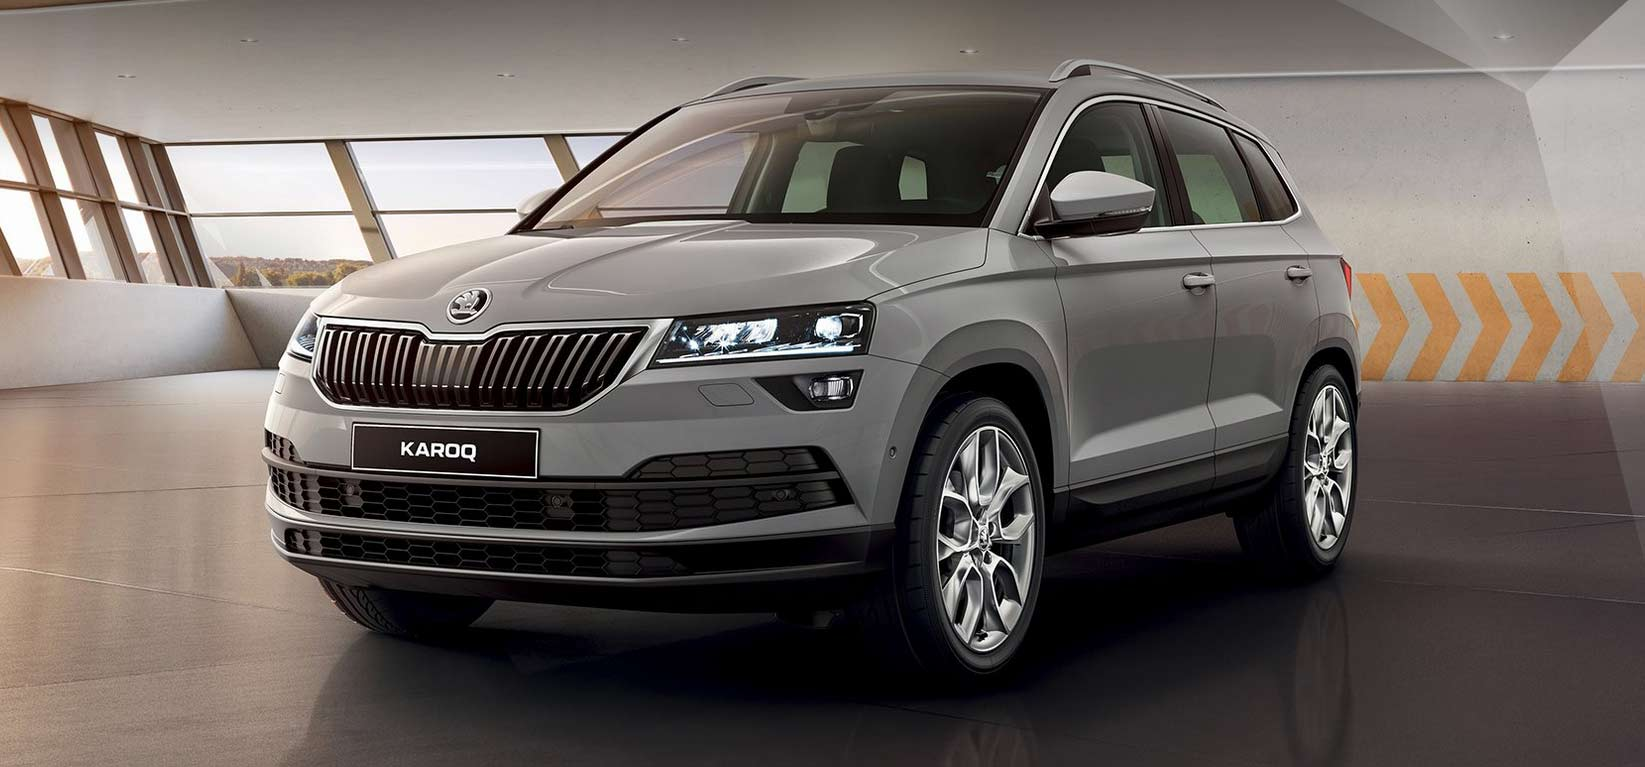 nouveau skoda karoq groupe boucher. Black Bedroom Furniture Sets. Home Design Ideas